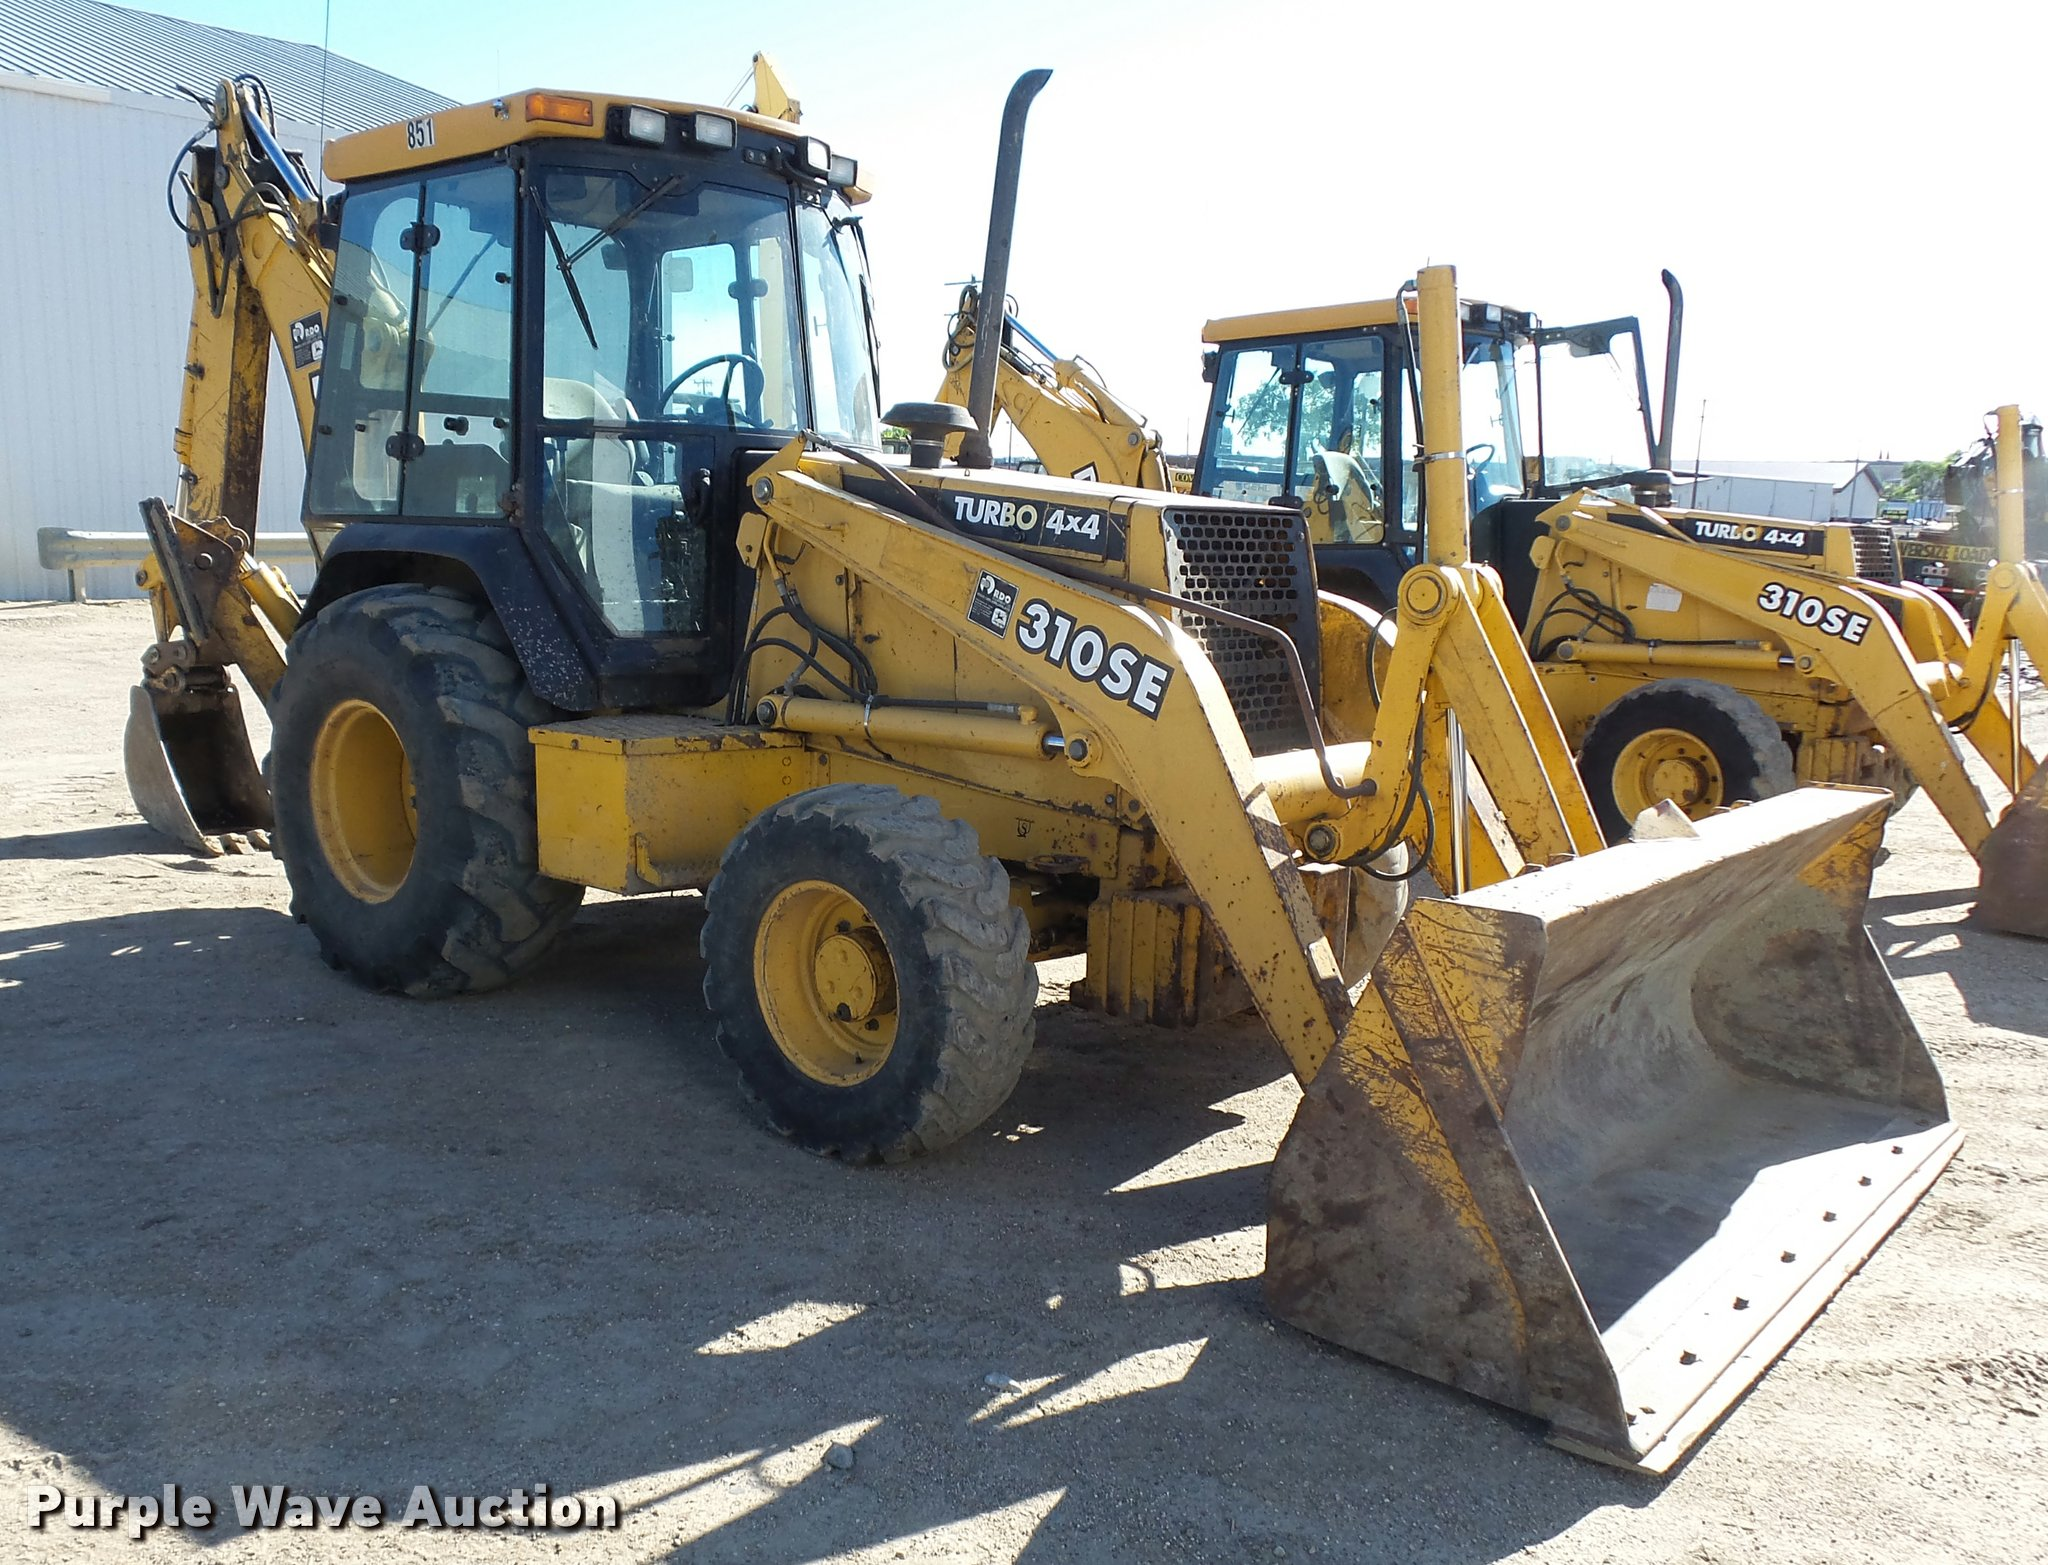 ... 1997 John Deere 310SE backhoe Full size in new window ...